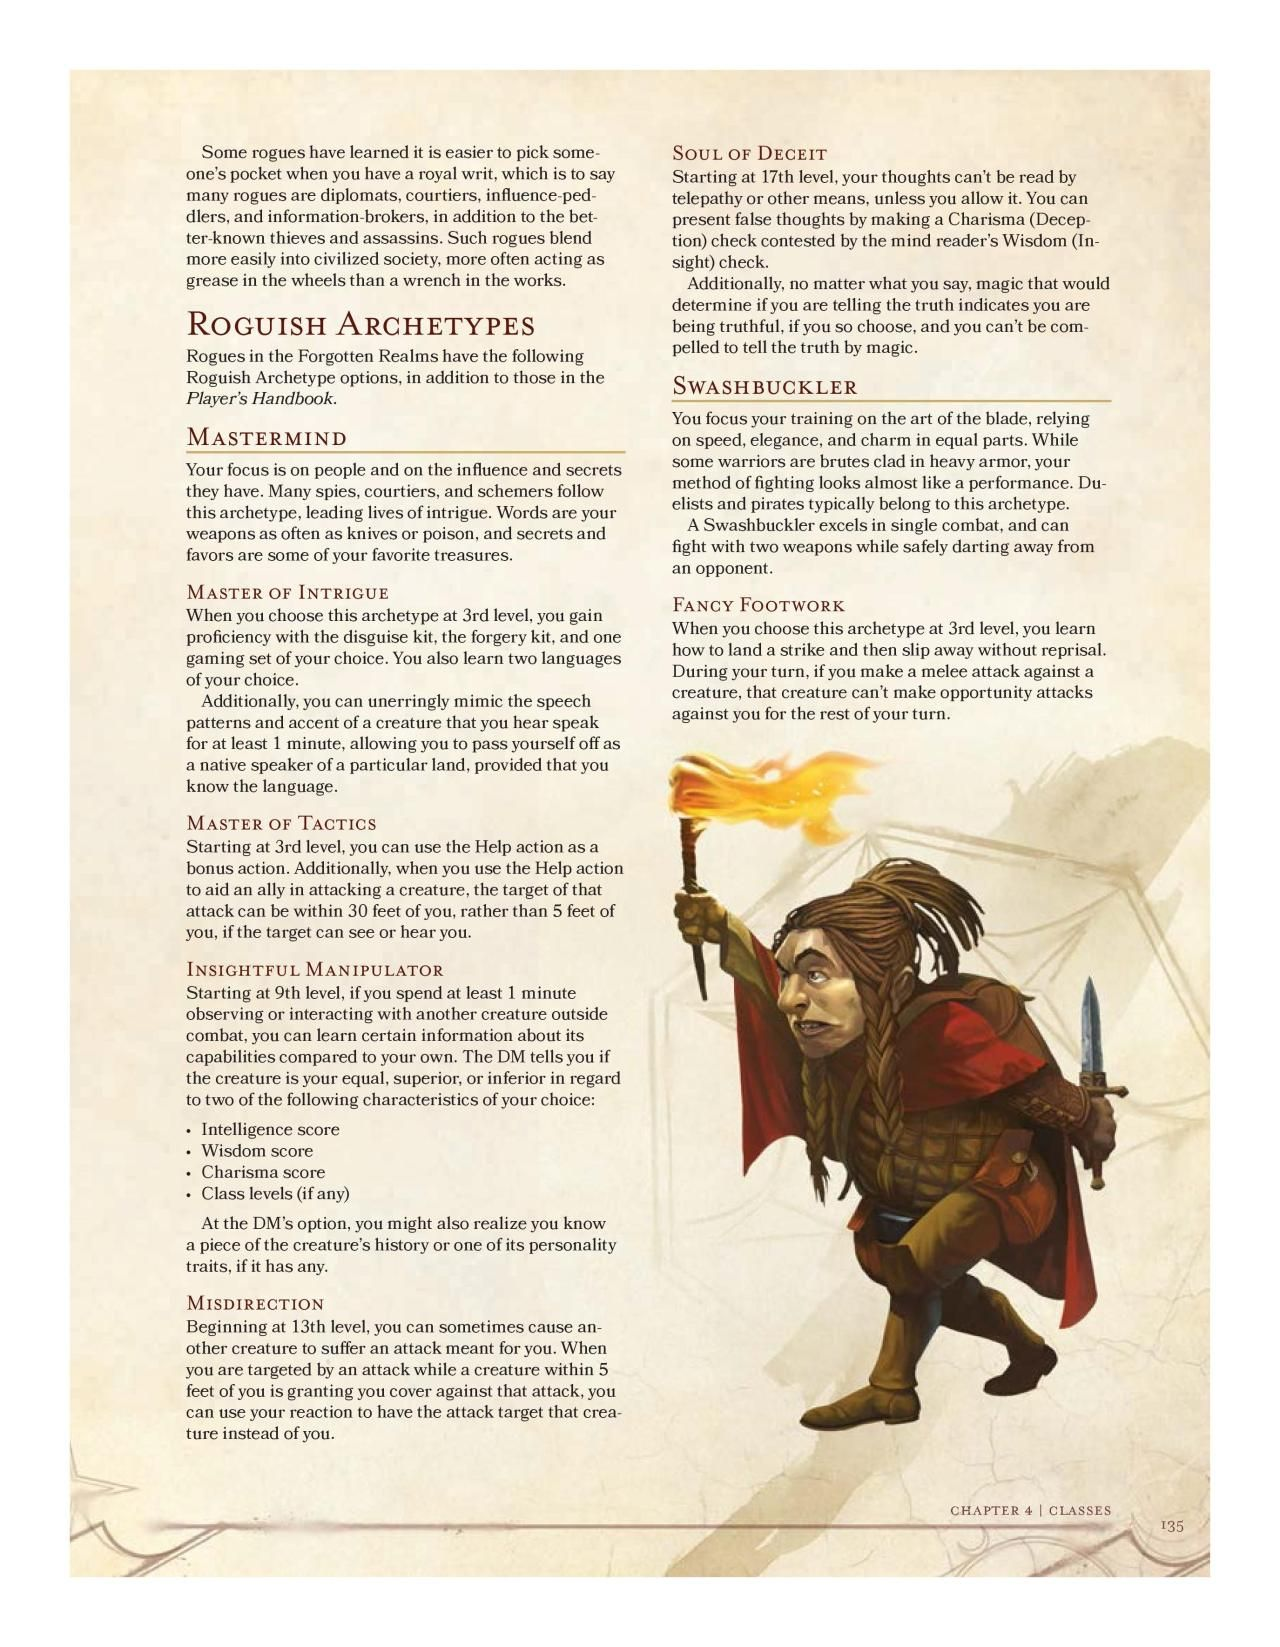 Official Rogue Subclass: Mastermind (Unearthed Arcana) | D&D